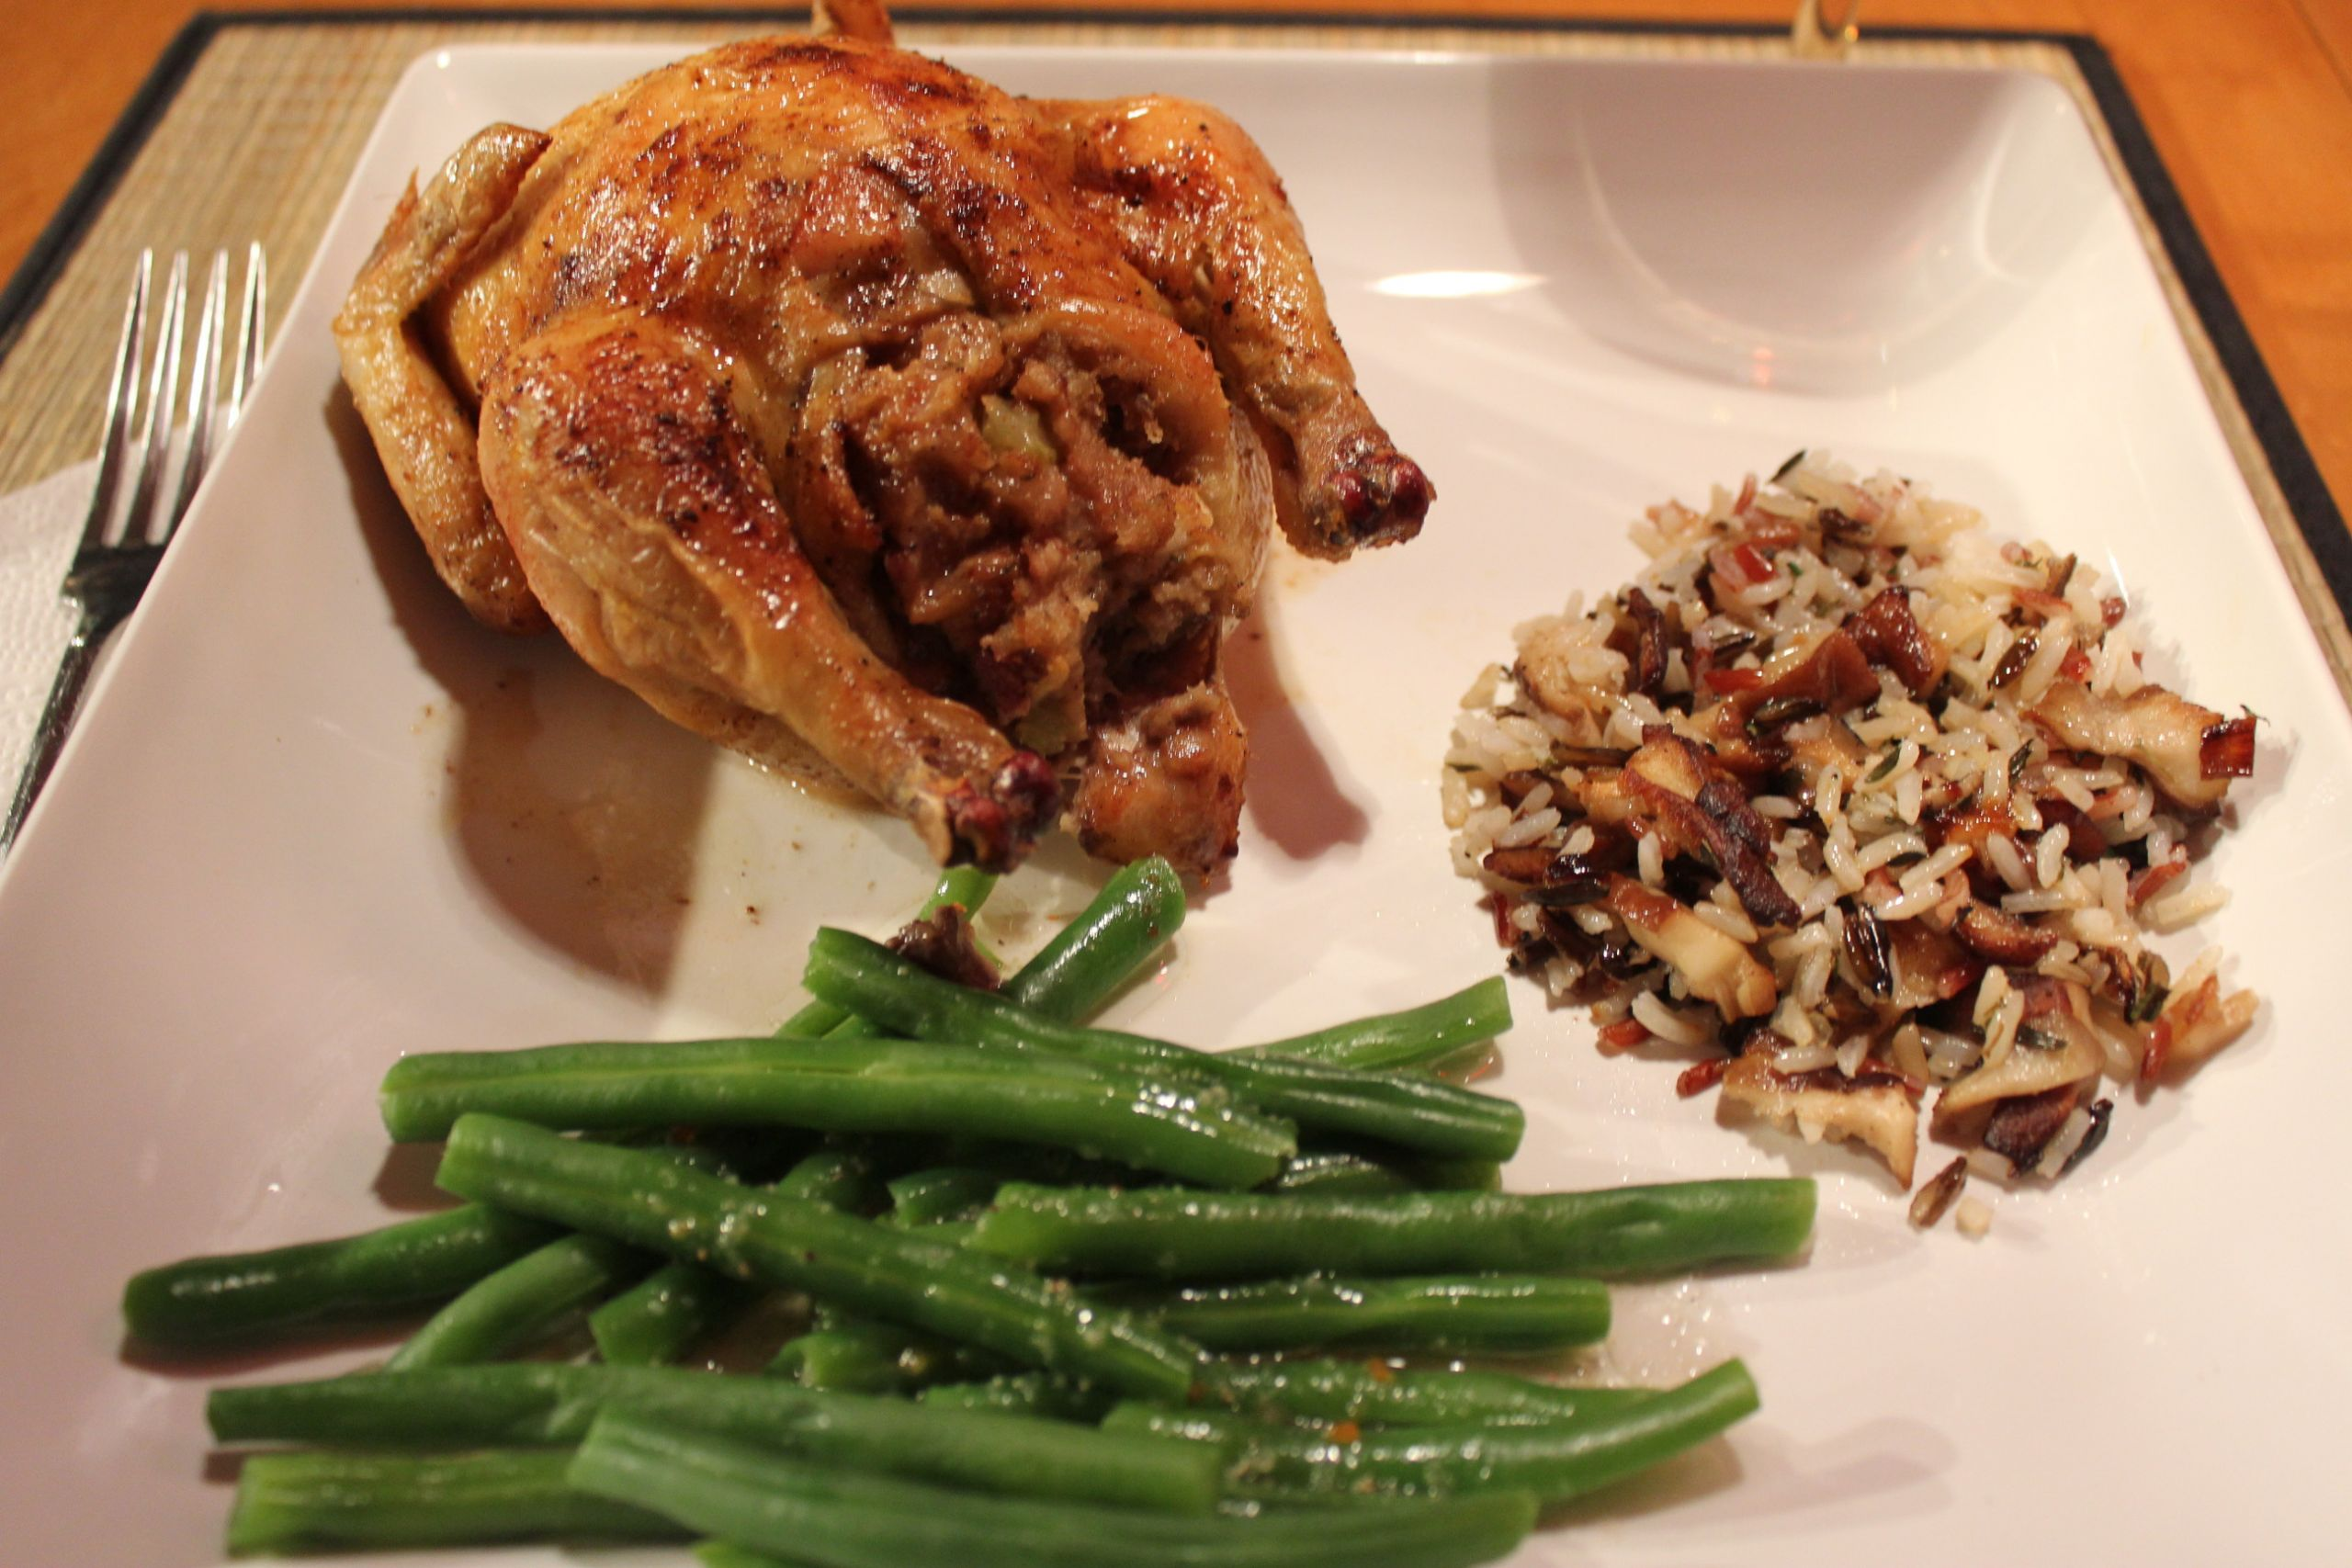 Recipes For Cornish Game Hens  Cornish Game Hens Stuffed Two Ways Part e Wild Rice